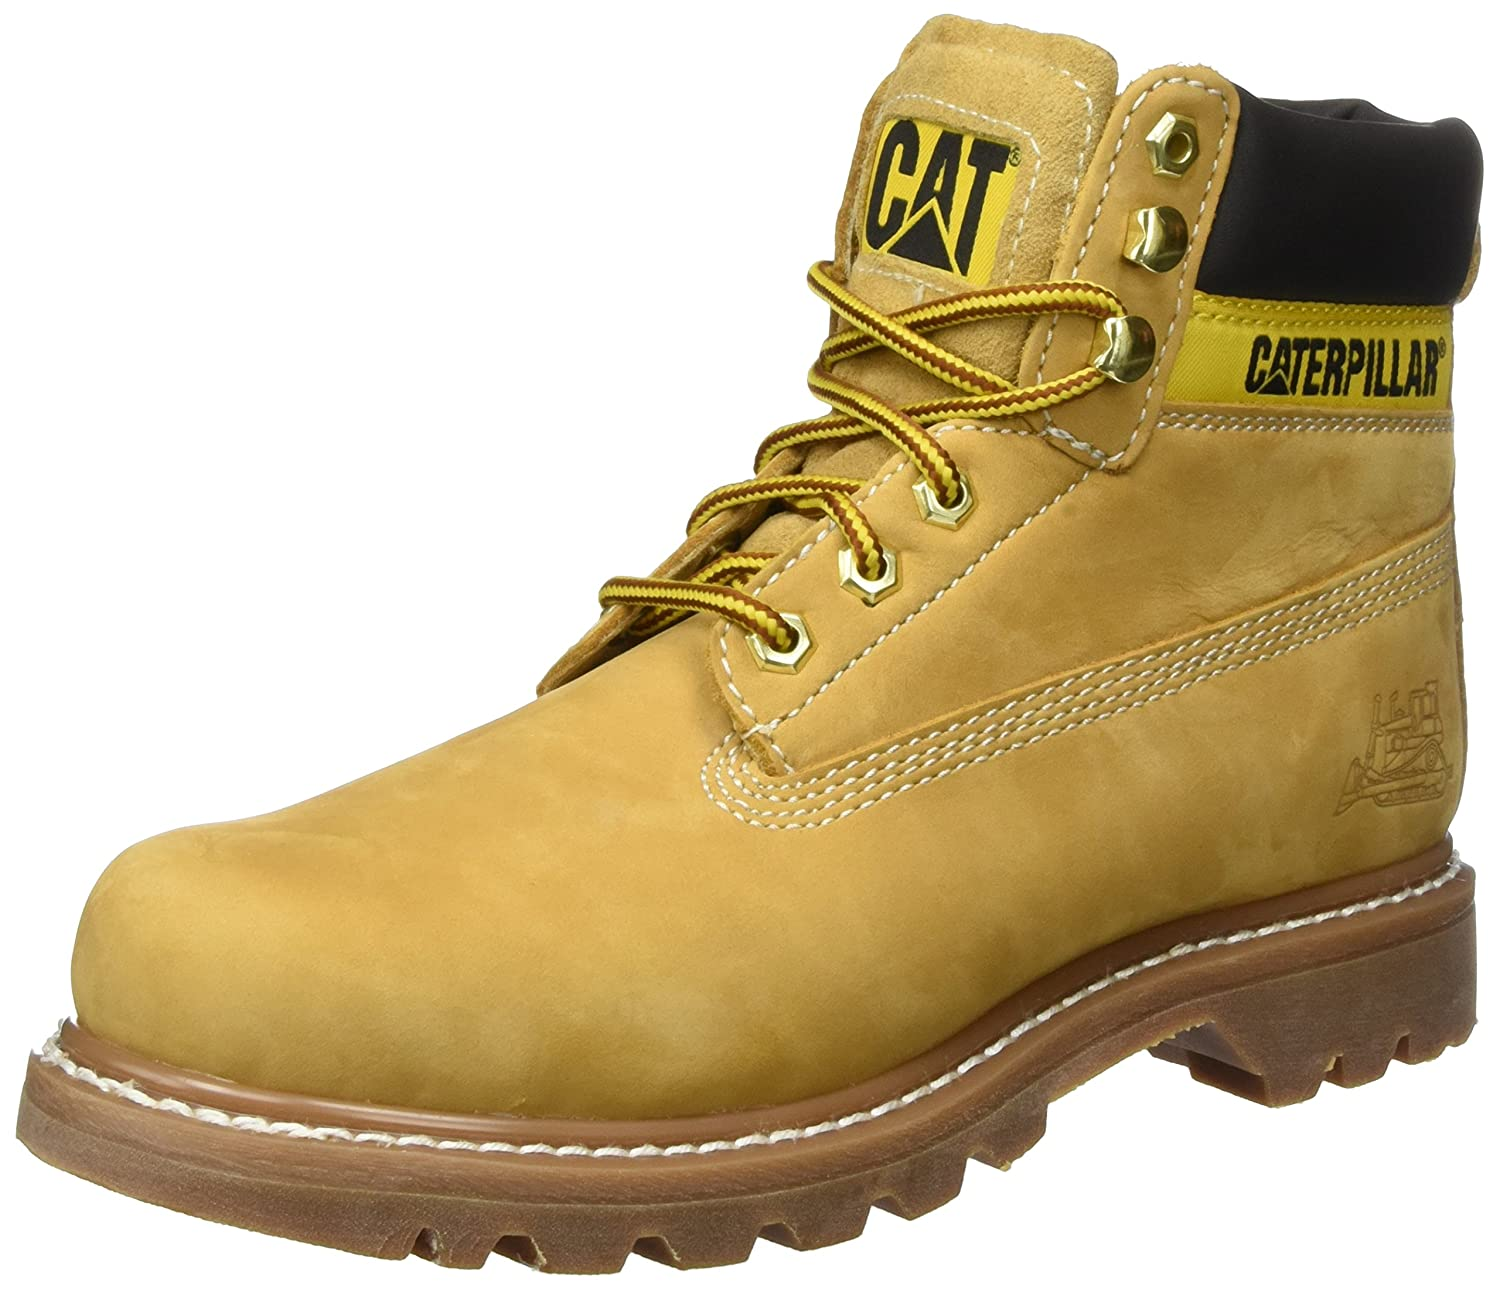 caterpillar shoes outlet in india